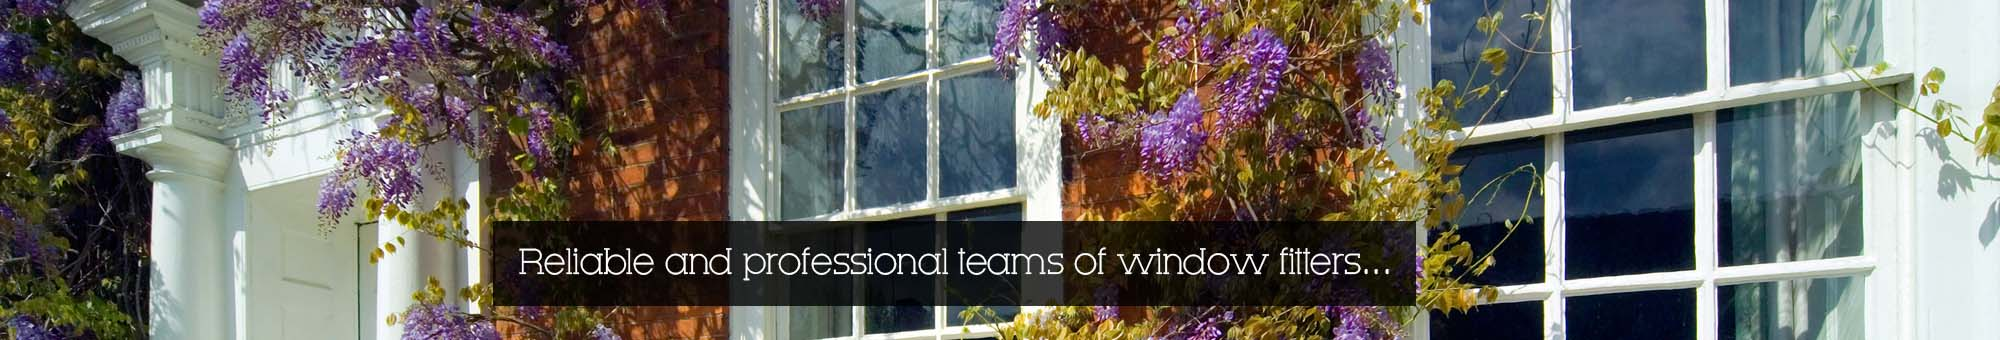 Window Fitter Cornwall